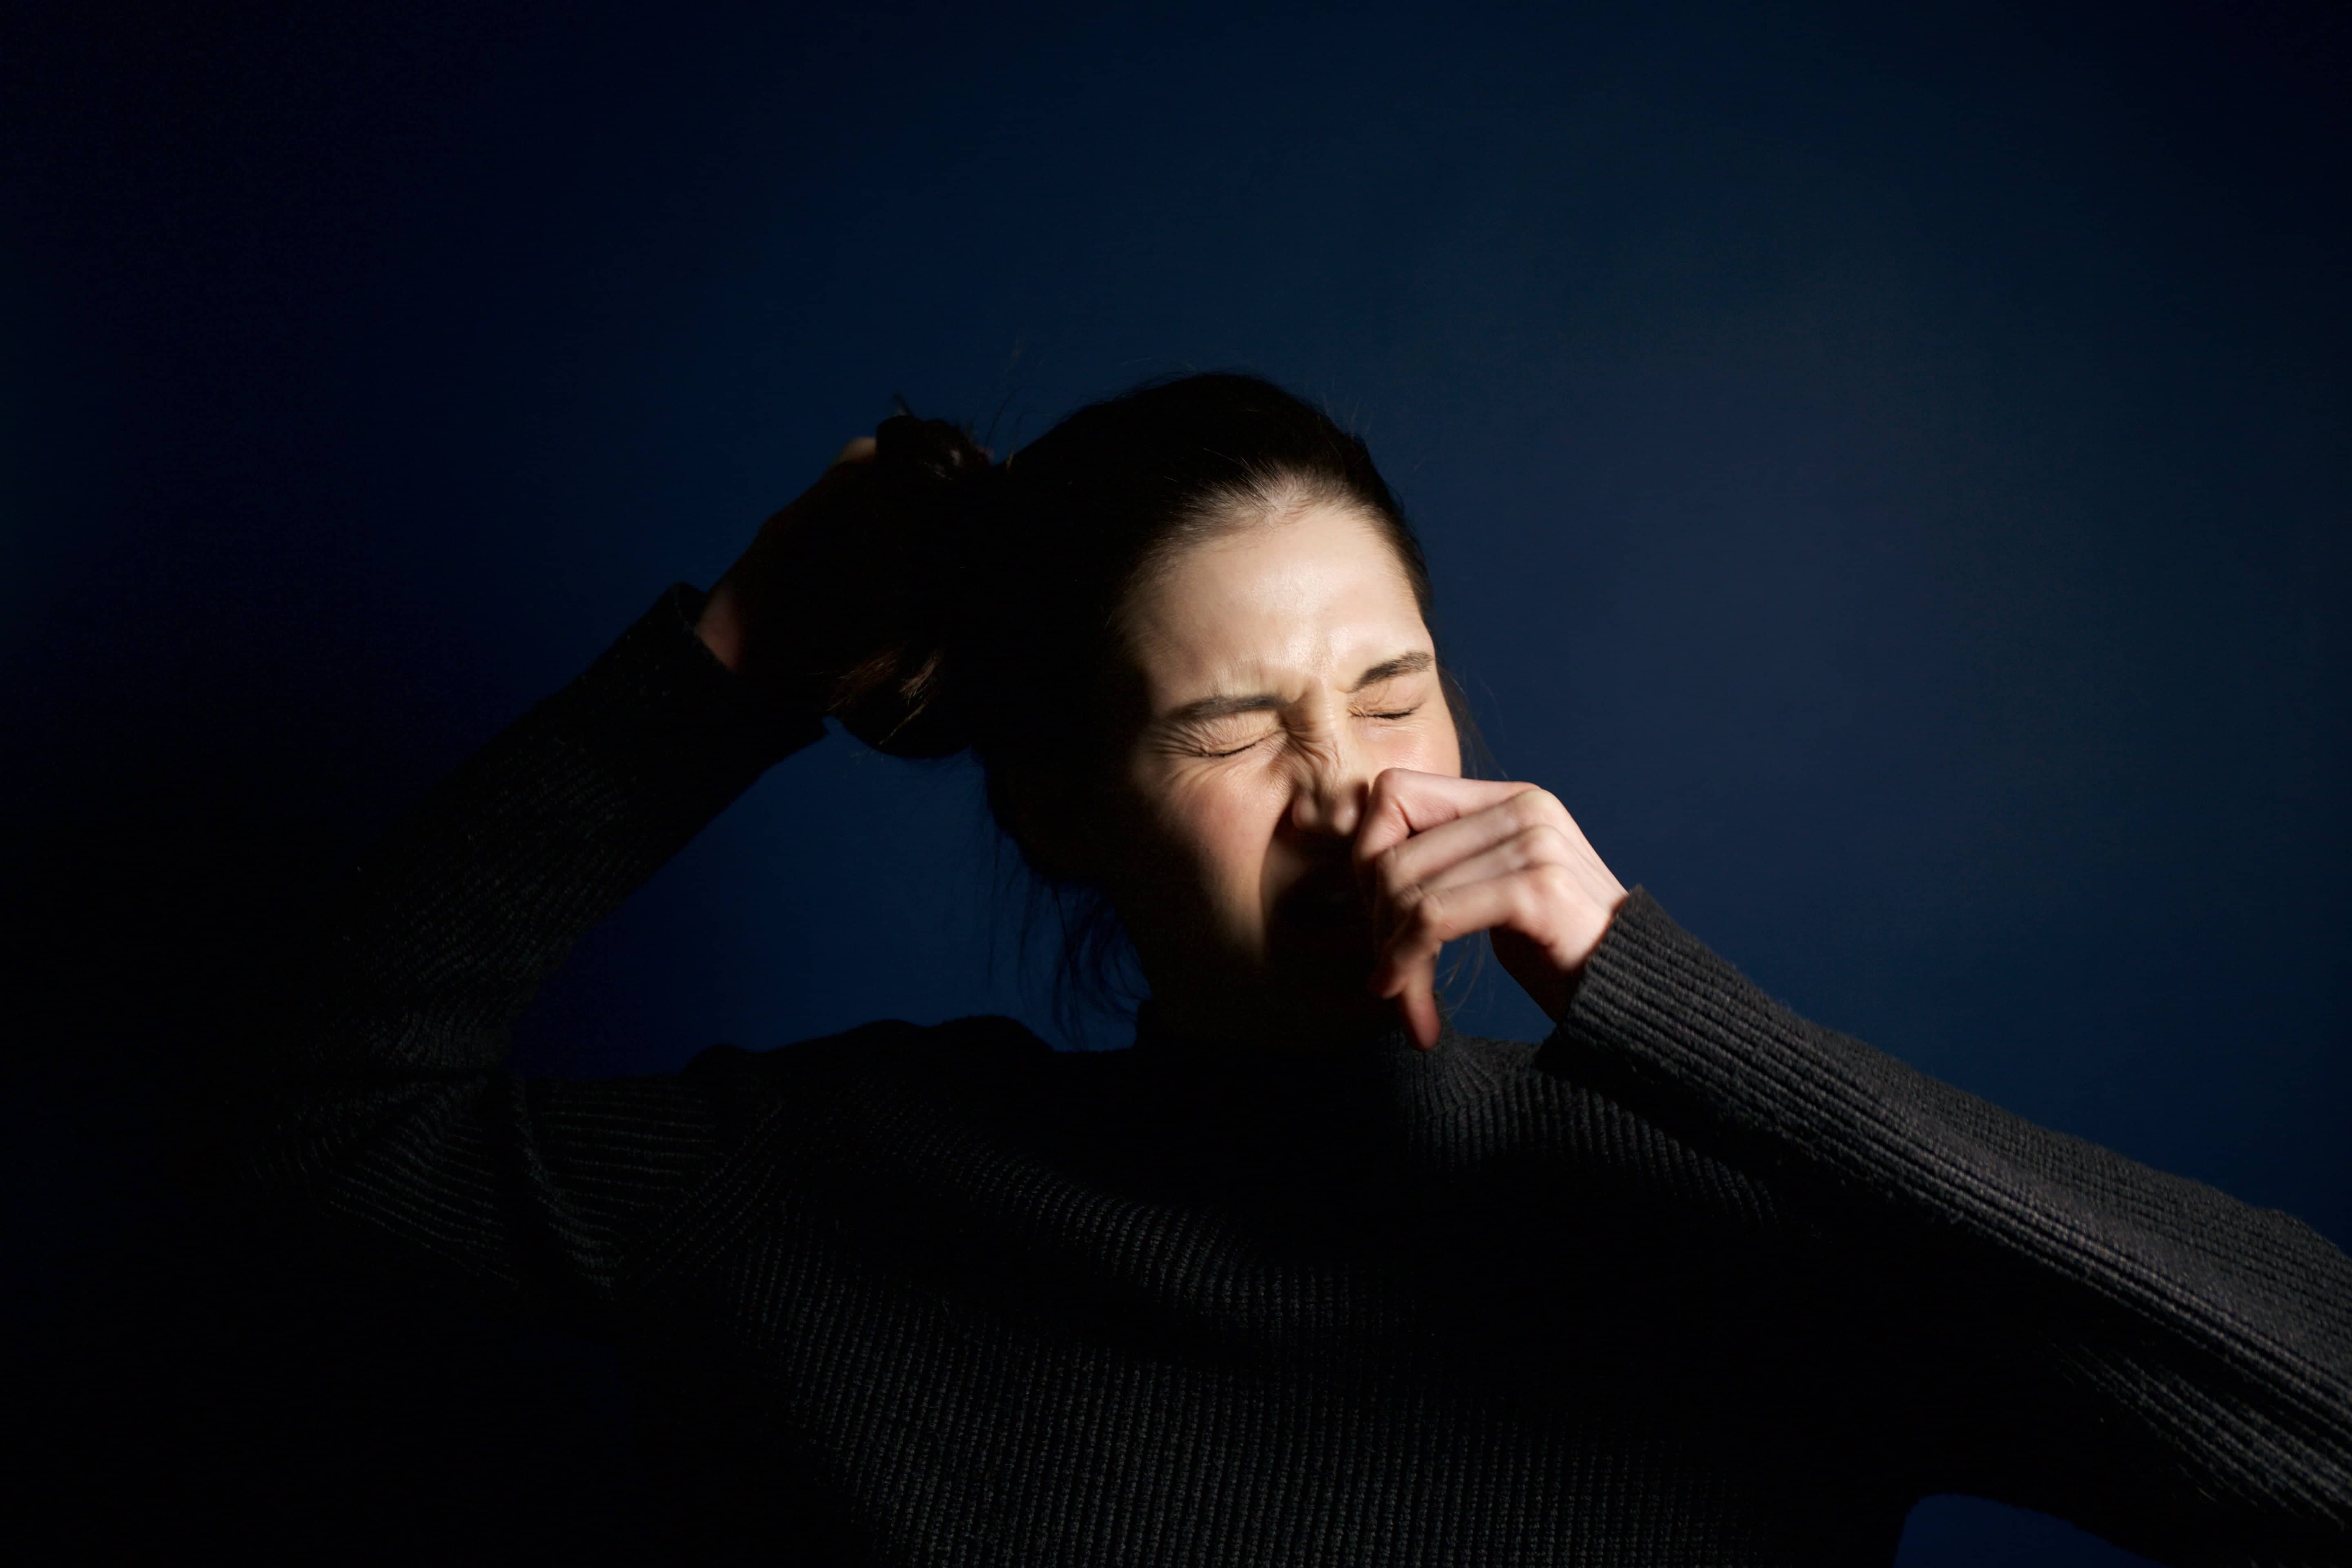 woman sneezing from allergies